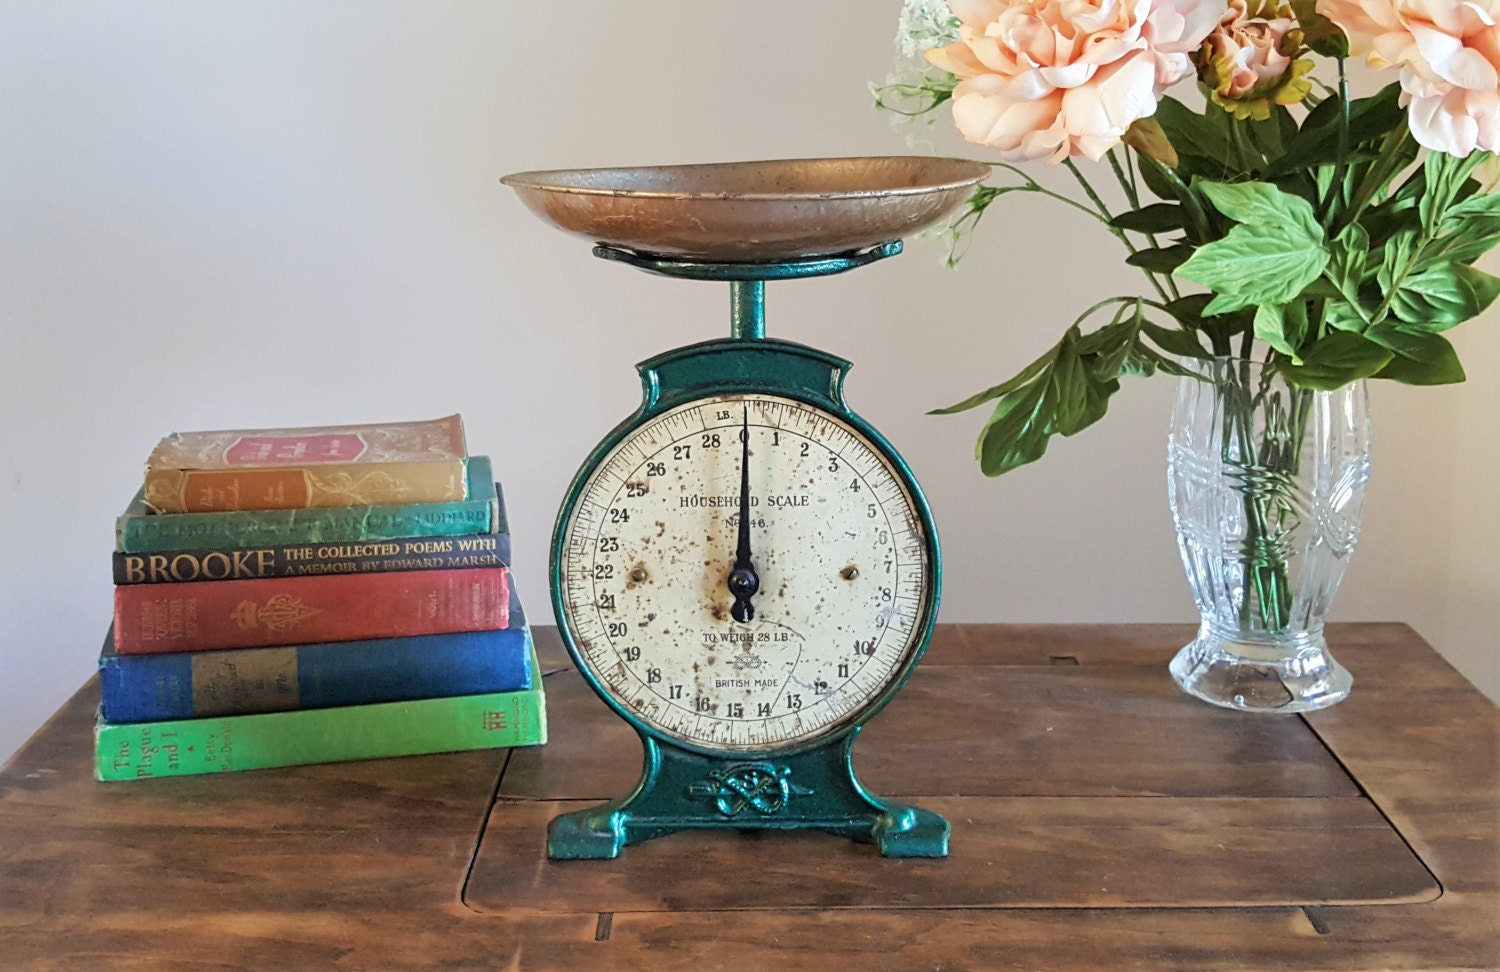 salter kitchen scale vintage weighing scales by. Black Bedroom Furniture Sets. Home Design Ideas